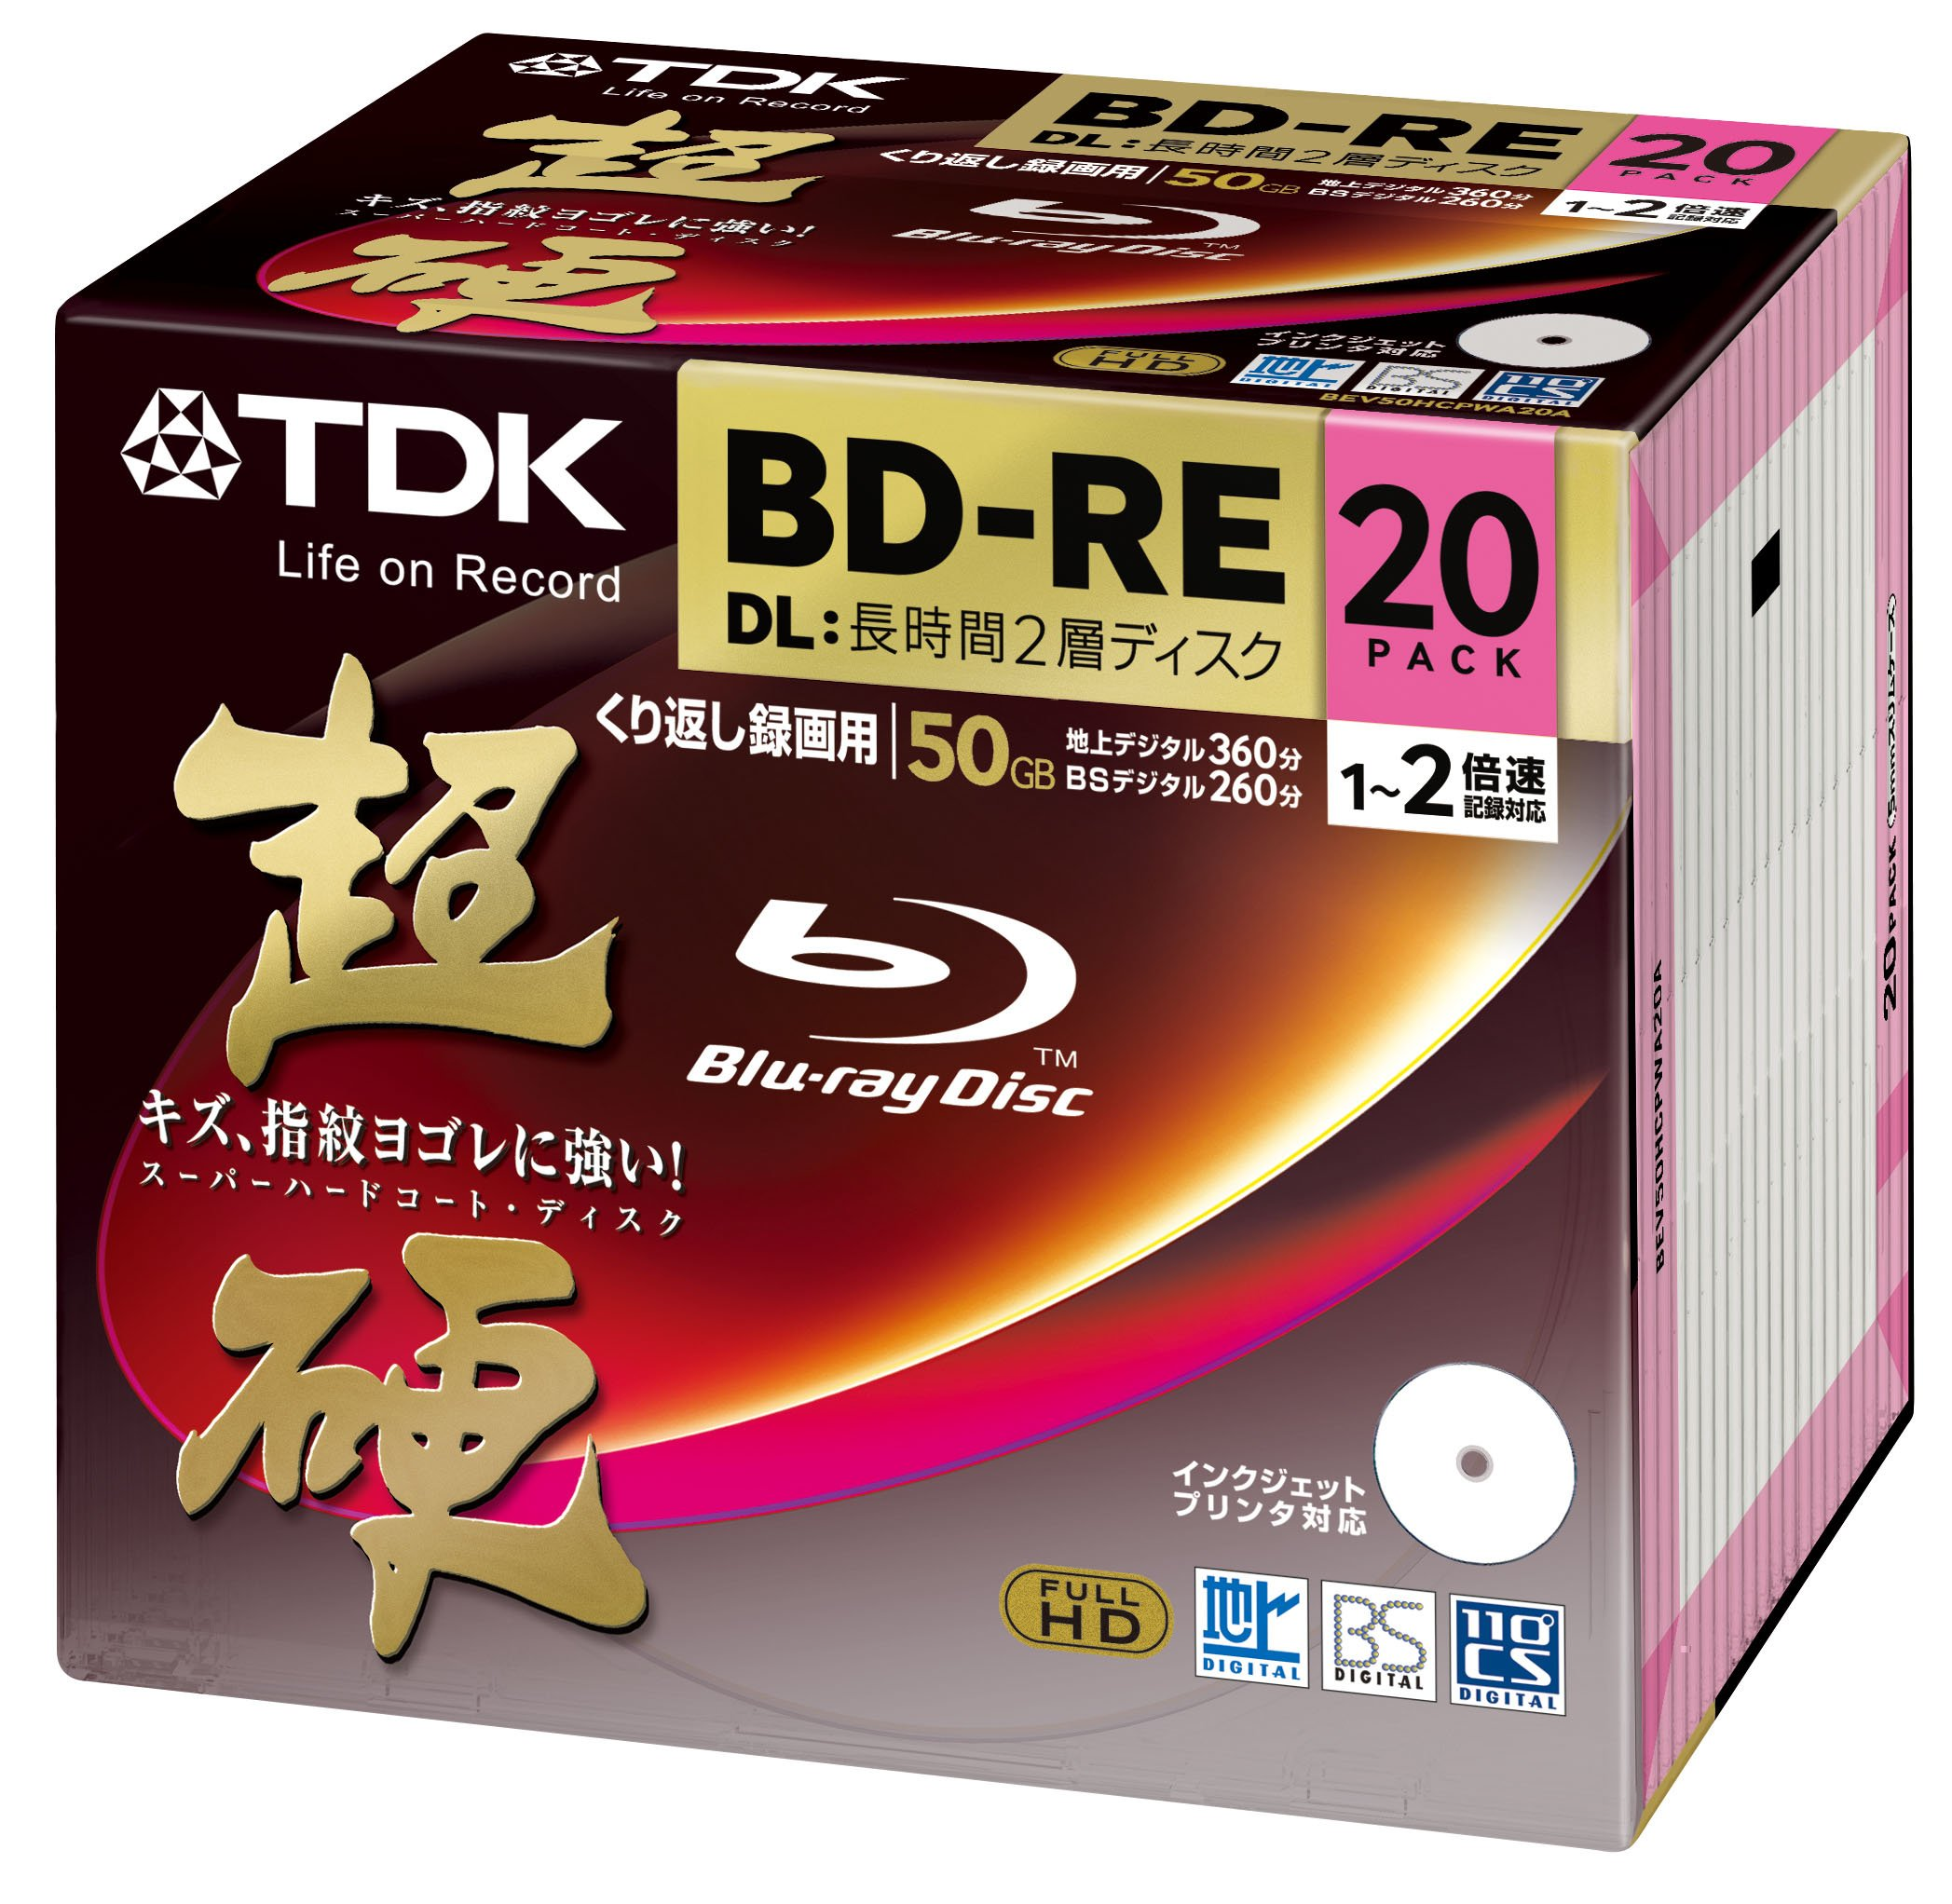 20 TDK Blu-ray Disc 50GB 2X BD-RE DL Dual Layer Rewritable Bluray Inkjet Printable by TDK